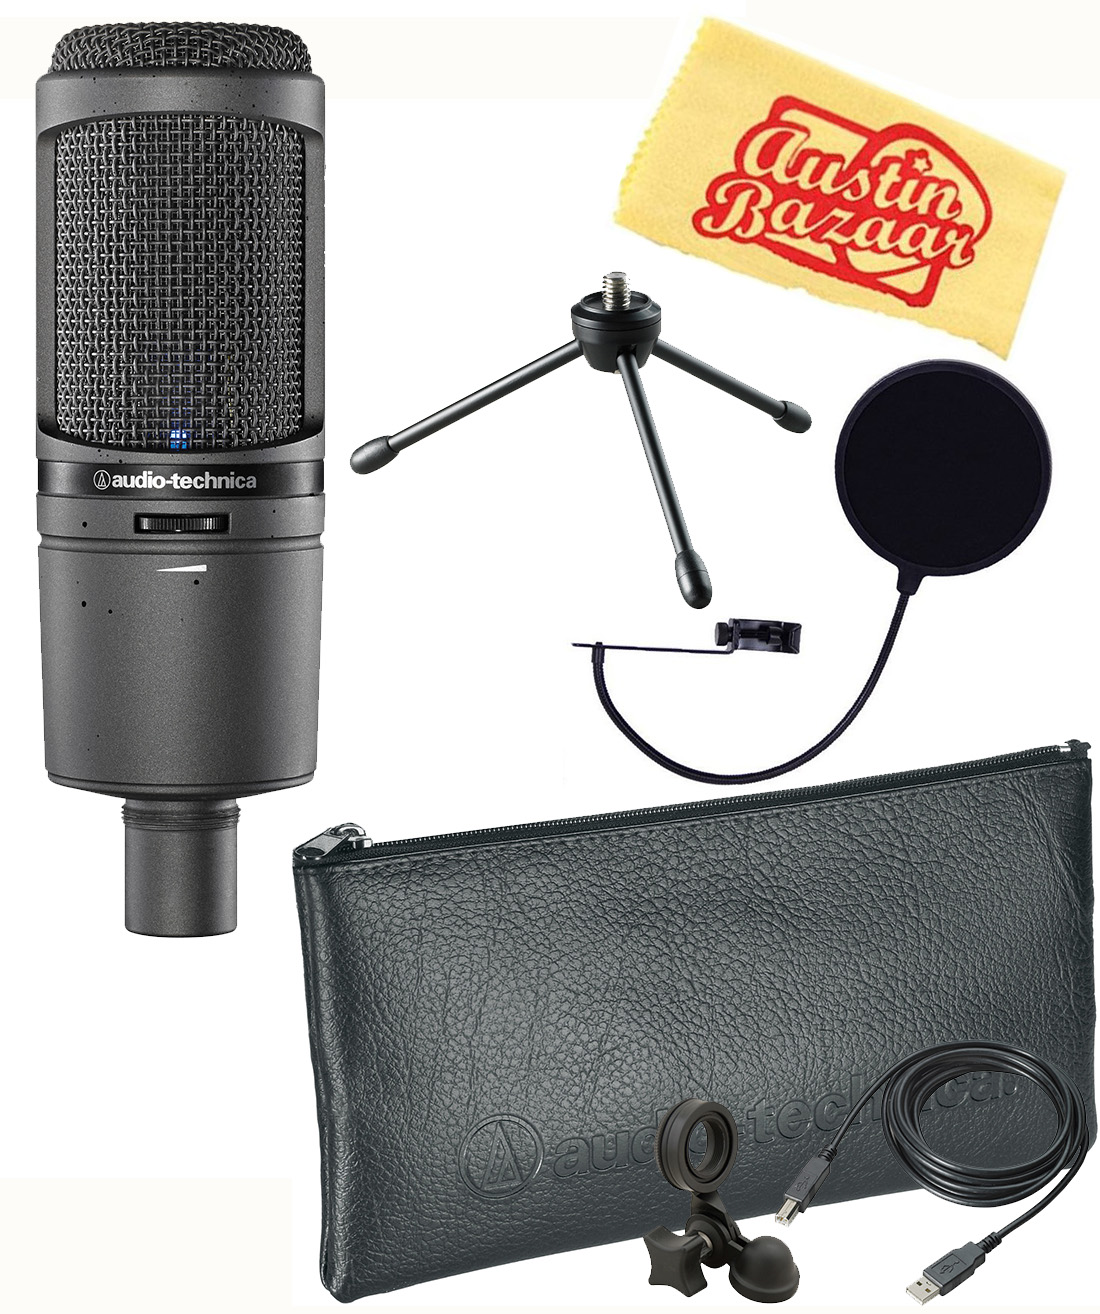 audio technica at2020usb cardioid condenser usb microphone w pop filter ebay. Black Bedroom Furniture Sets. Home Design Ideas